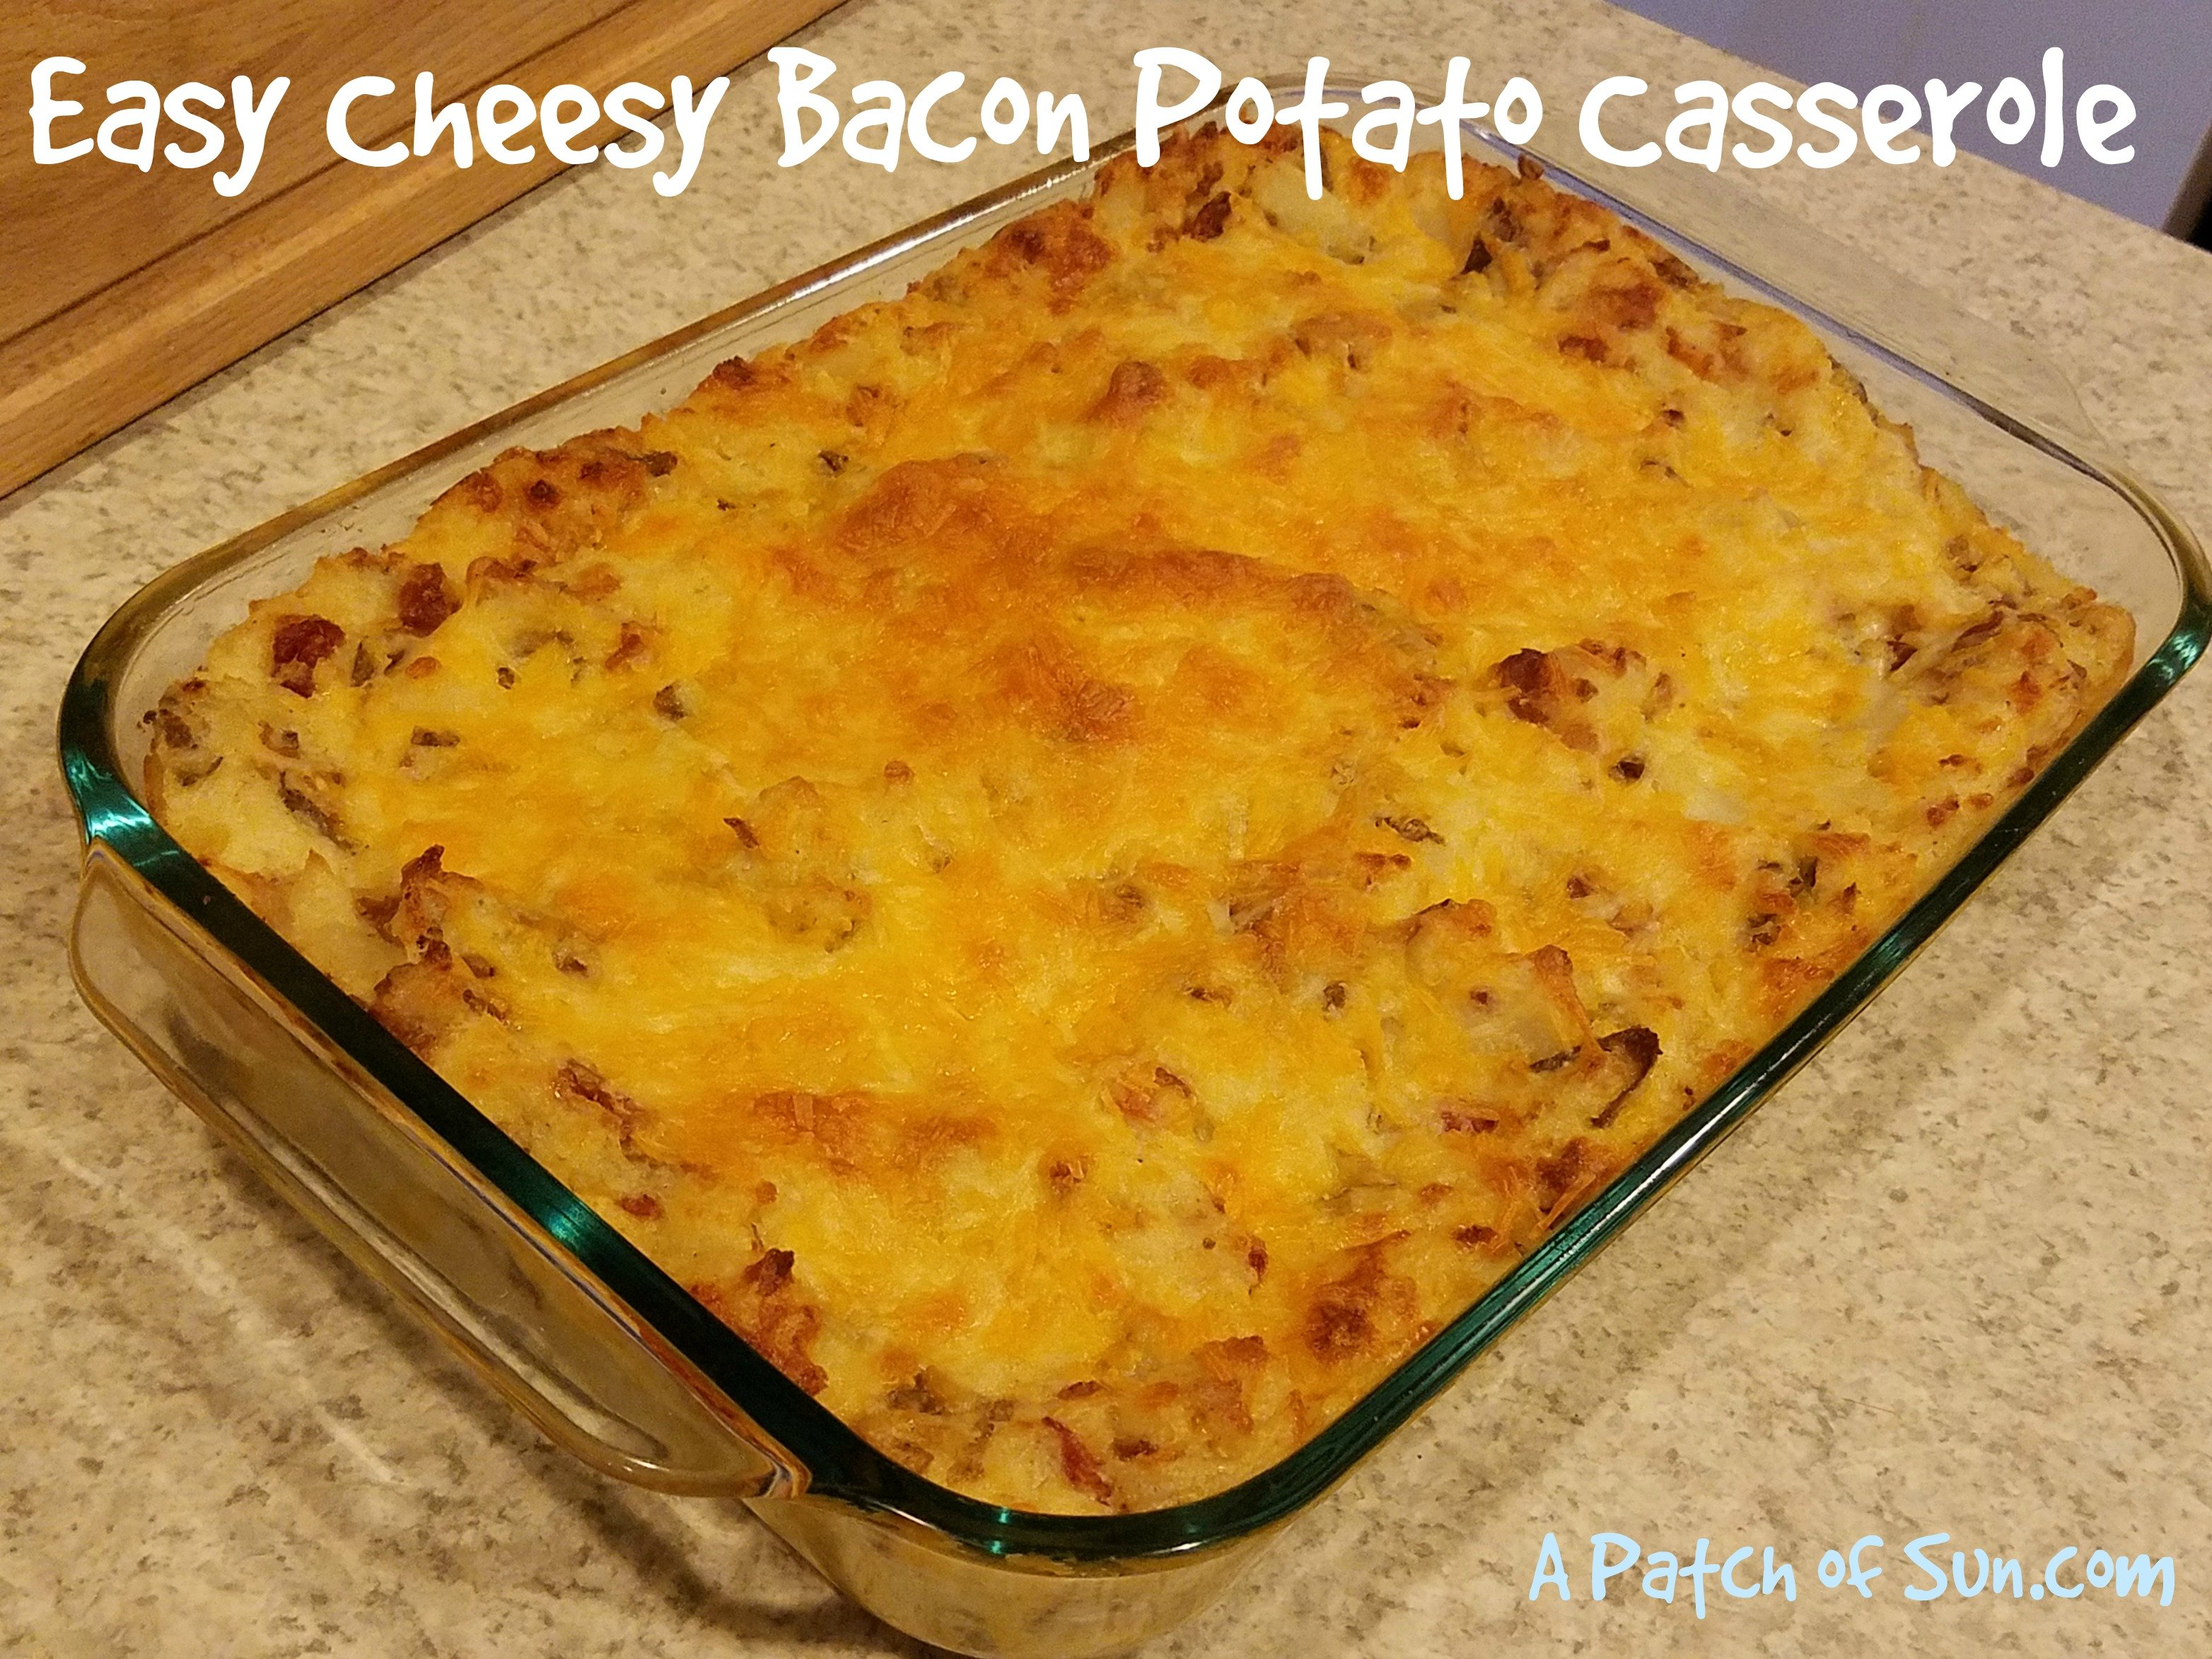 Easy Cheesy Bacon Potato Casserole